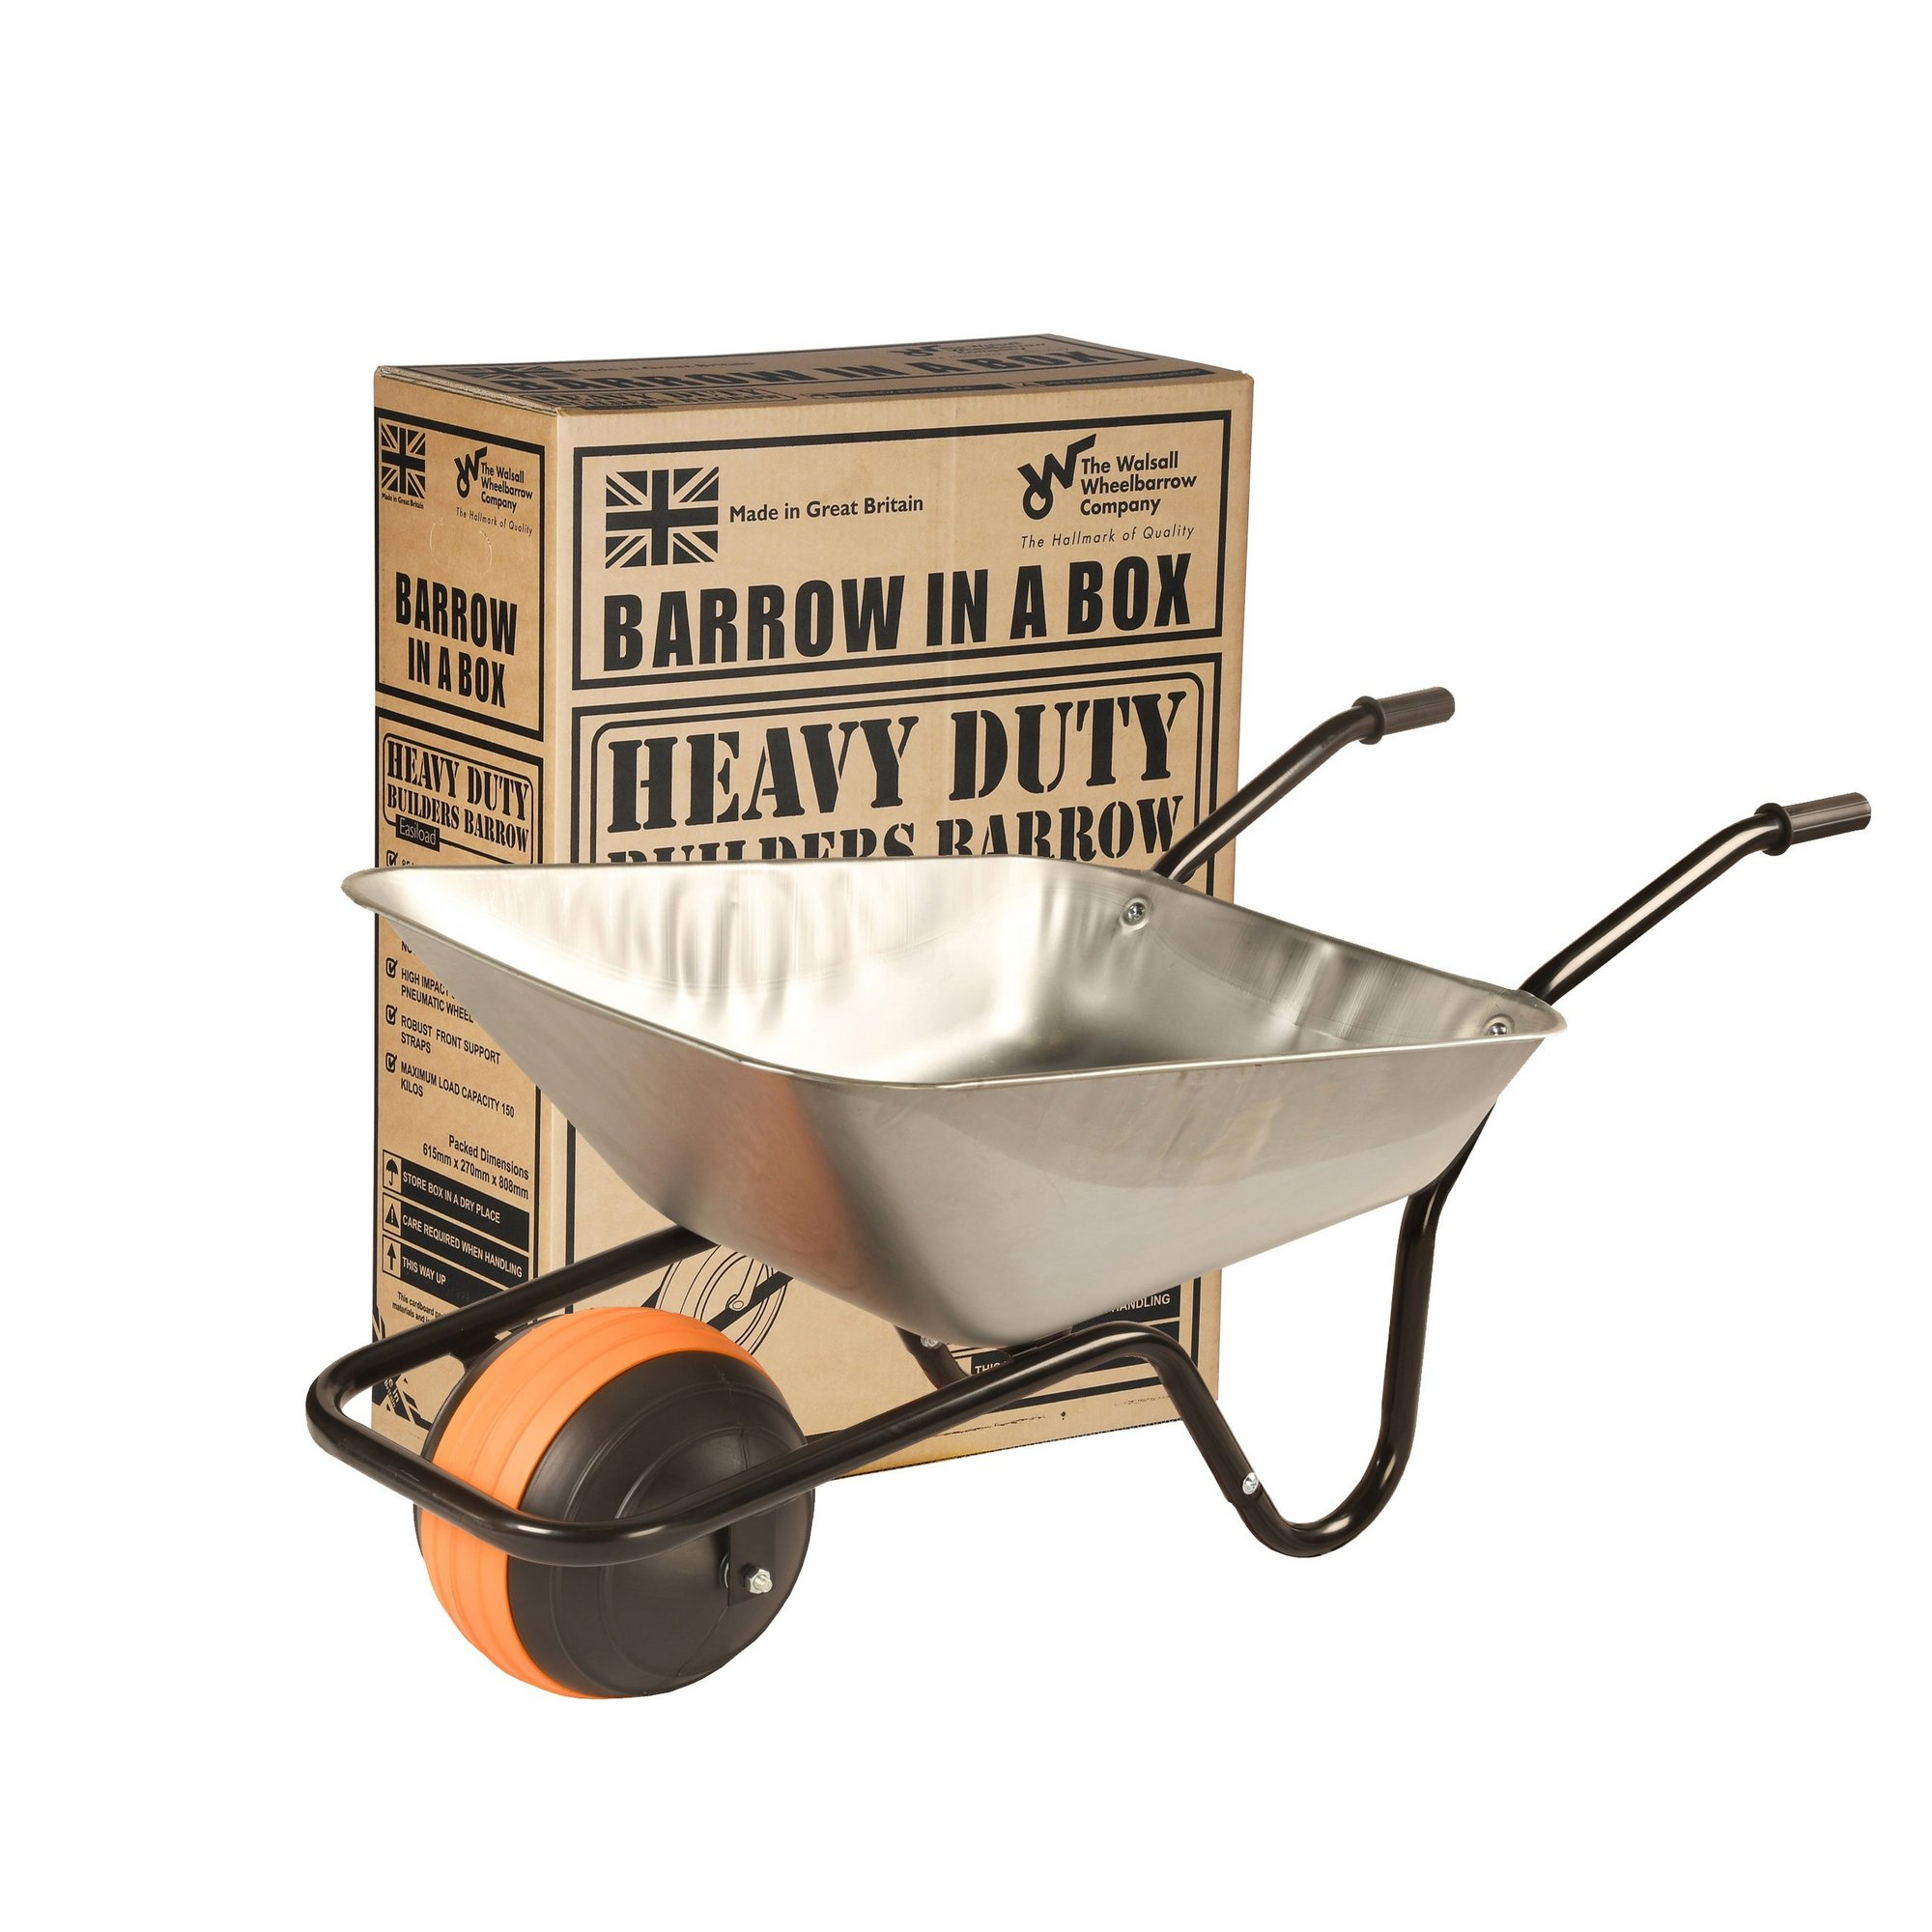 Image of Puncture Proof Galvanised Barrow In A Box Wheelbarrow